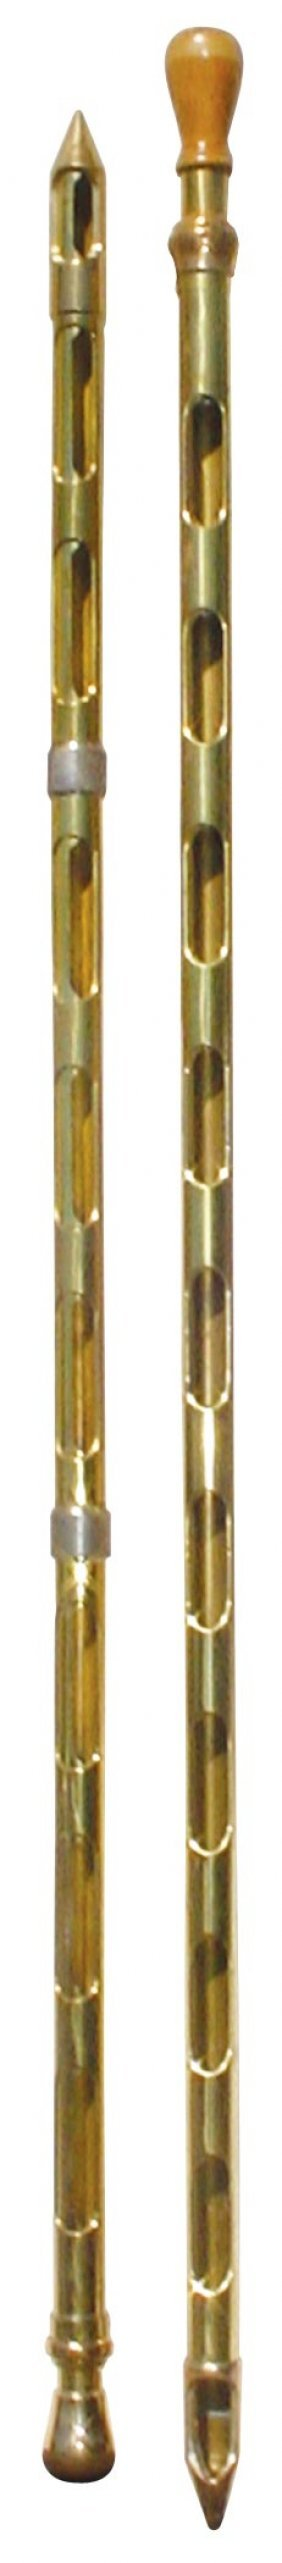 Grain Probes (2), Both Solid Brass, One W/wood Kn